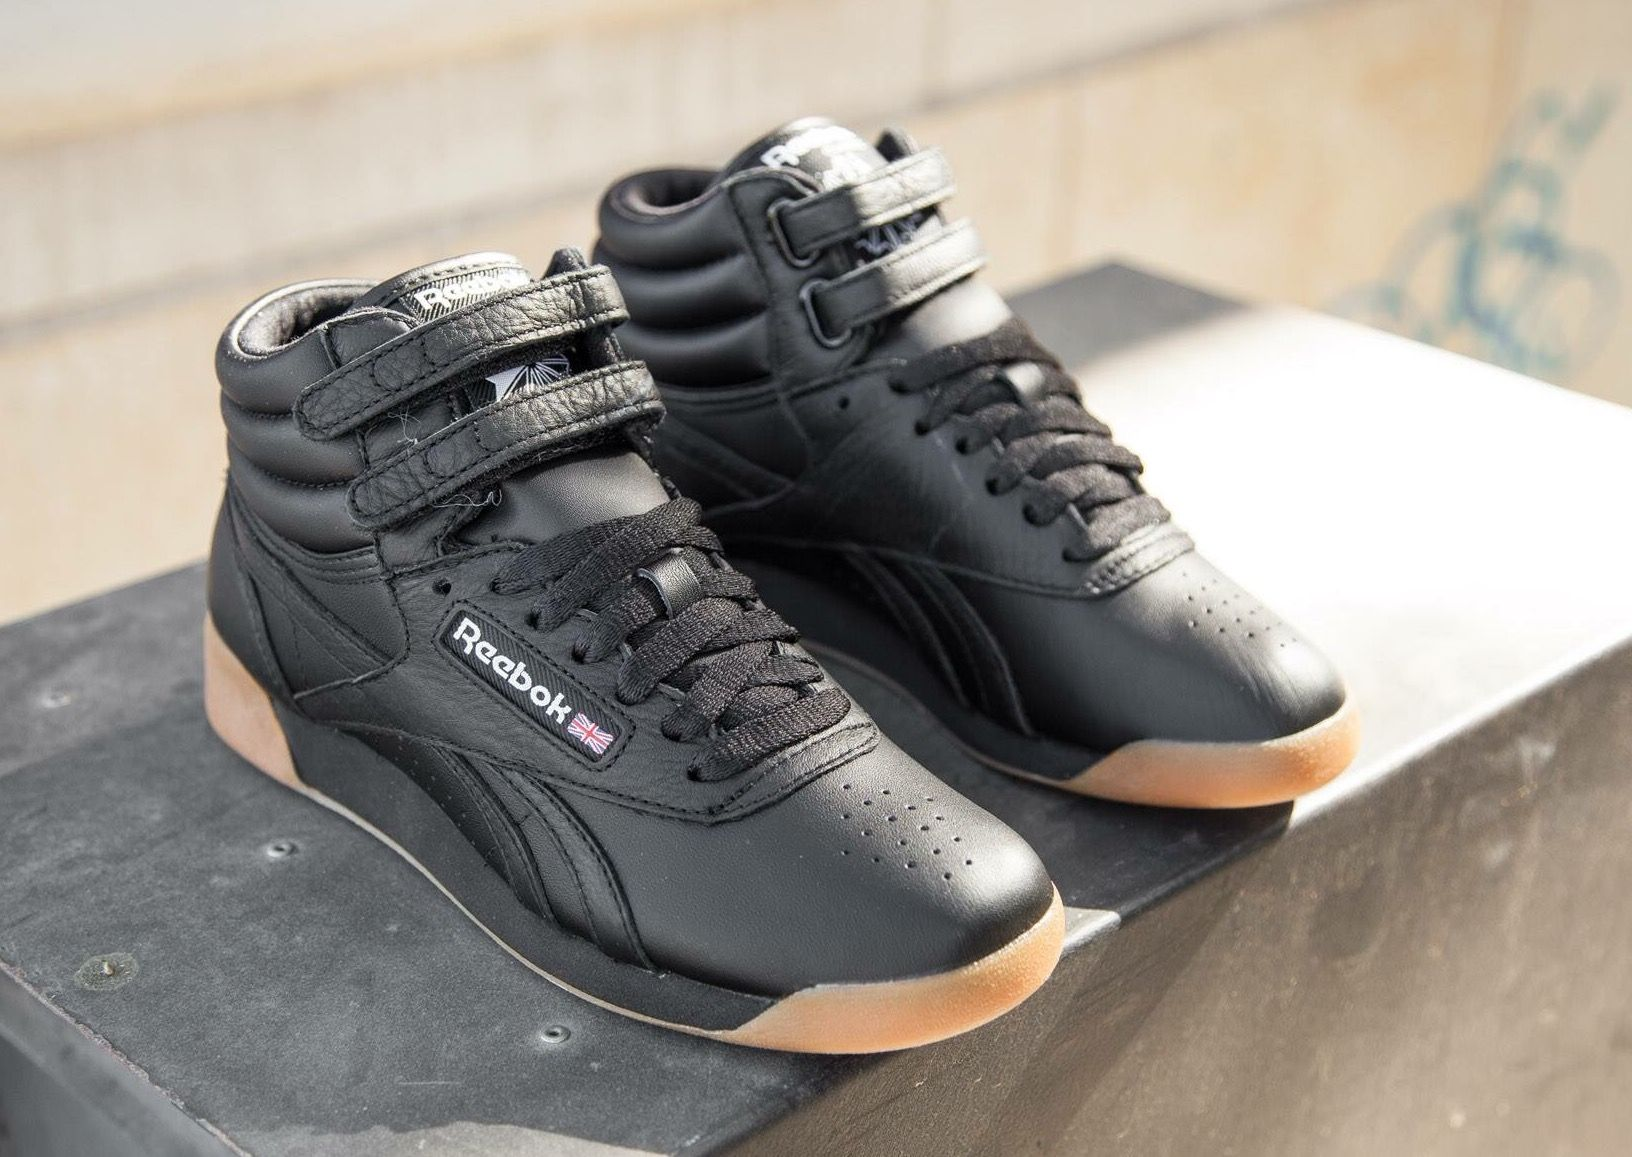 a95a6a135e Reebok Freestyle High: Black/Gum | Outfits I love | Reebok freestyle ...